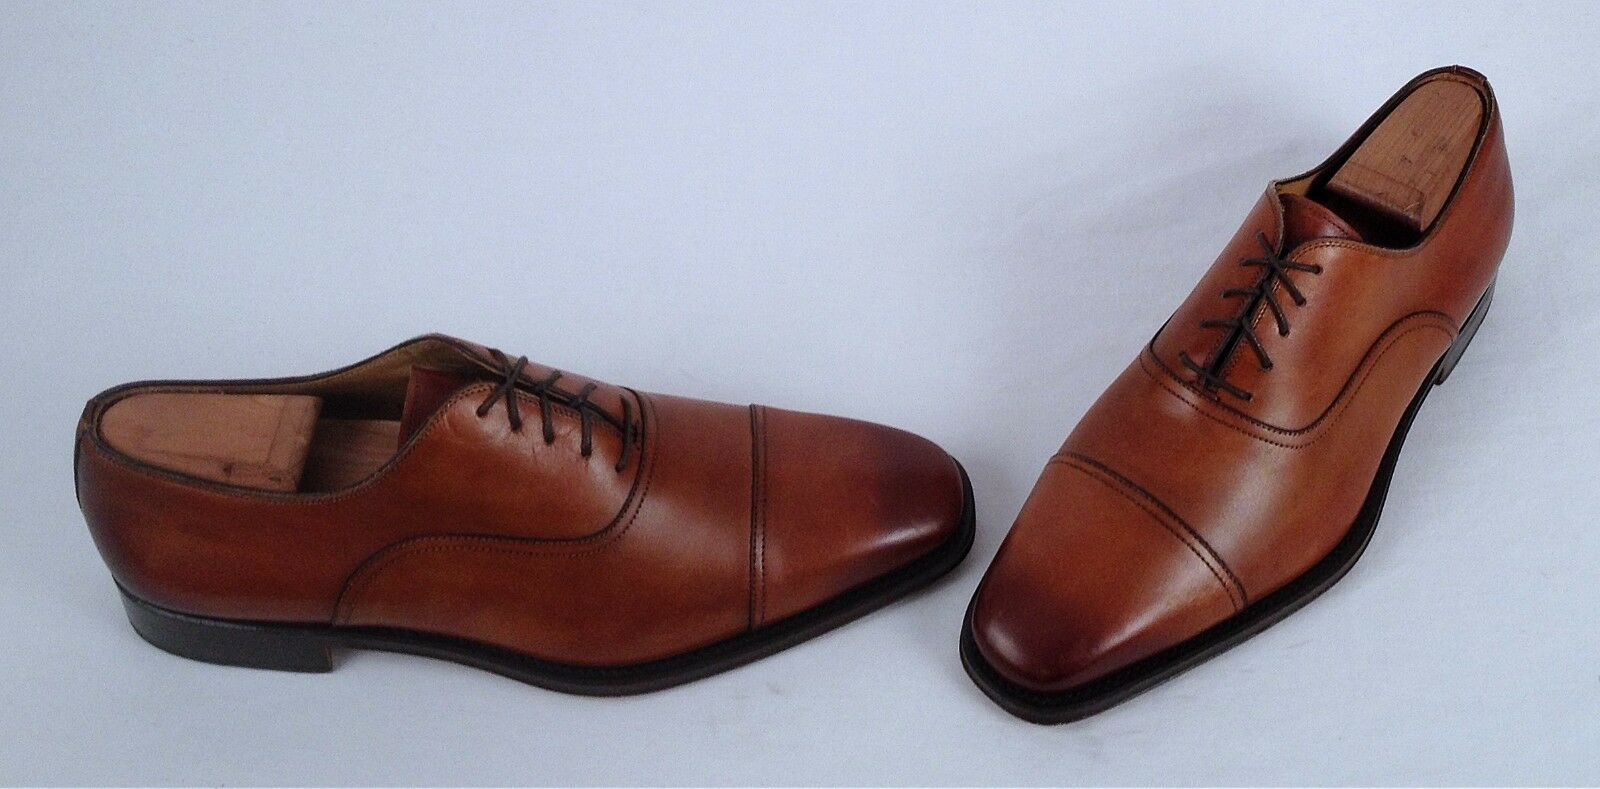 Magnanni 'Bonete' Cap Toe Oxford - Cognac- Size 9.5 M  Labeled 9 M   (M2)